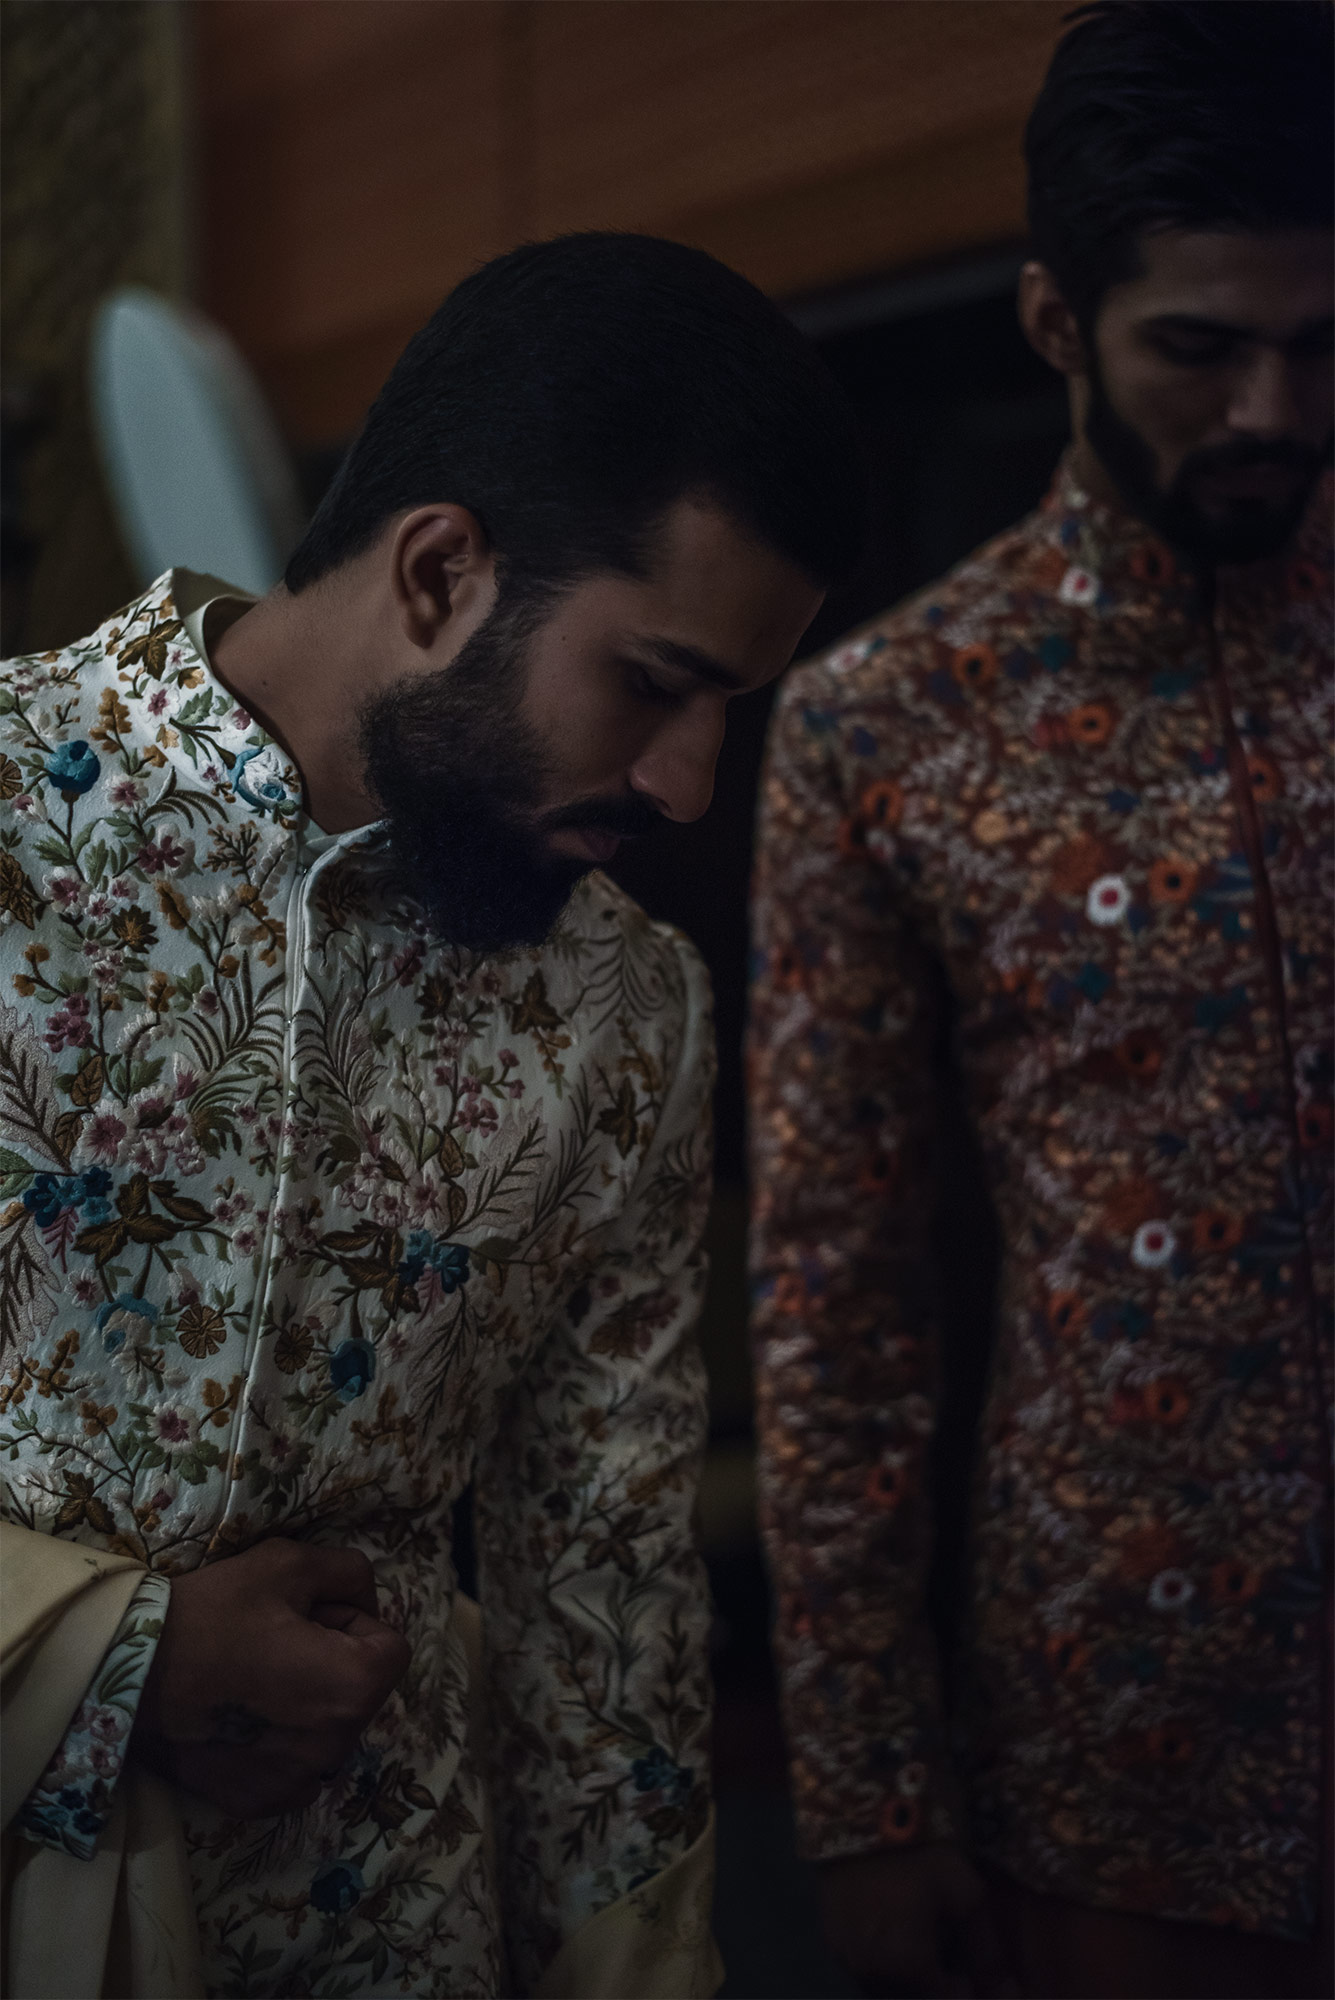 M.A.C. Backstage FDCI India Couture Week 2016 Photo by RAWKY KSH 25